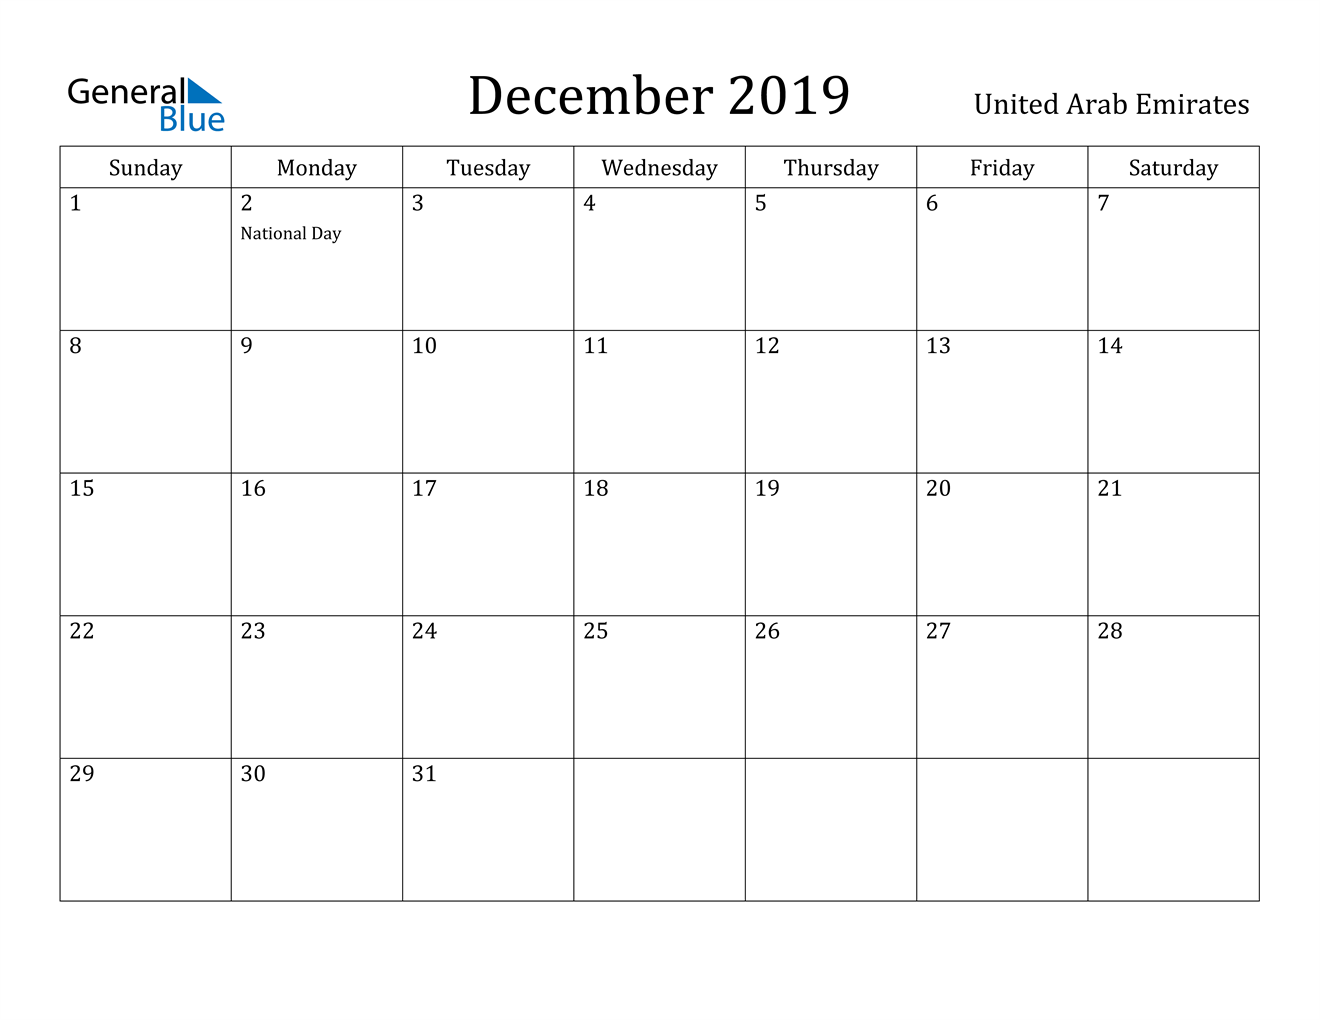 Image of December 2019 United Arab Emirates Calendar with Holidays Calendar